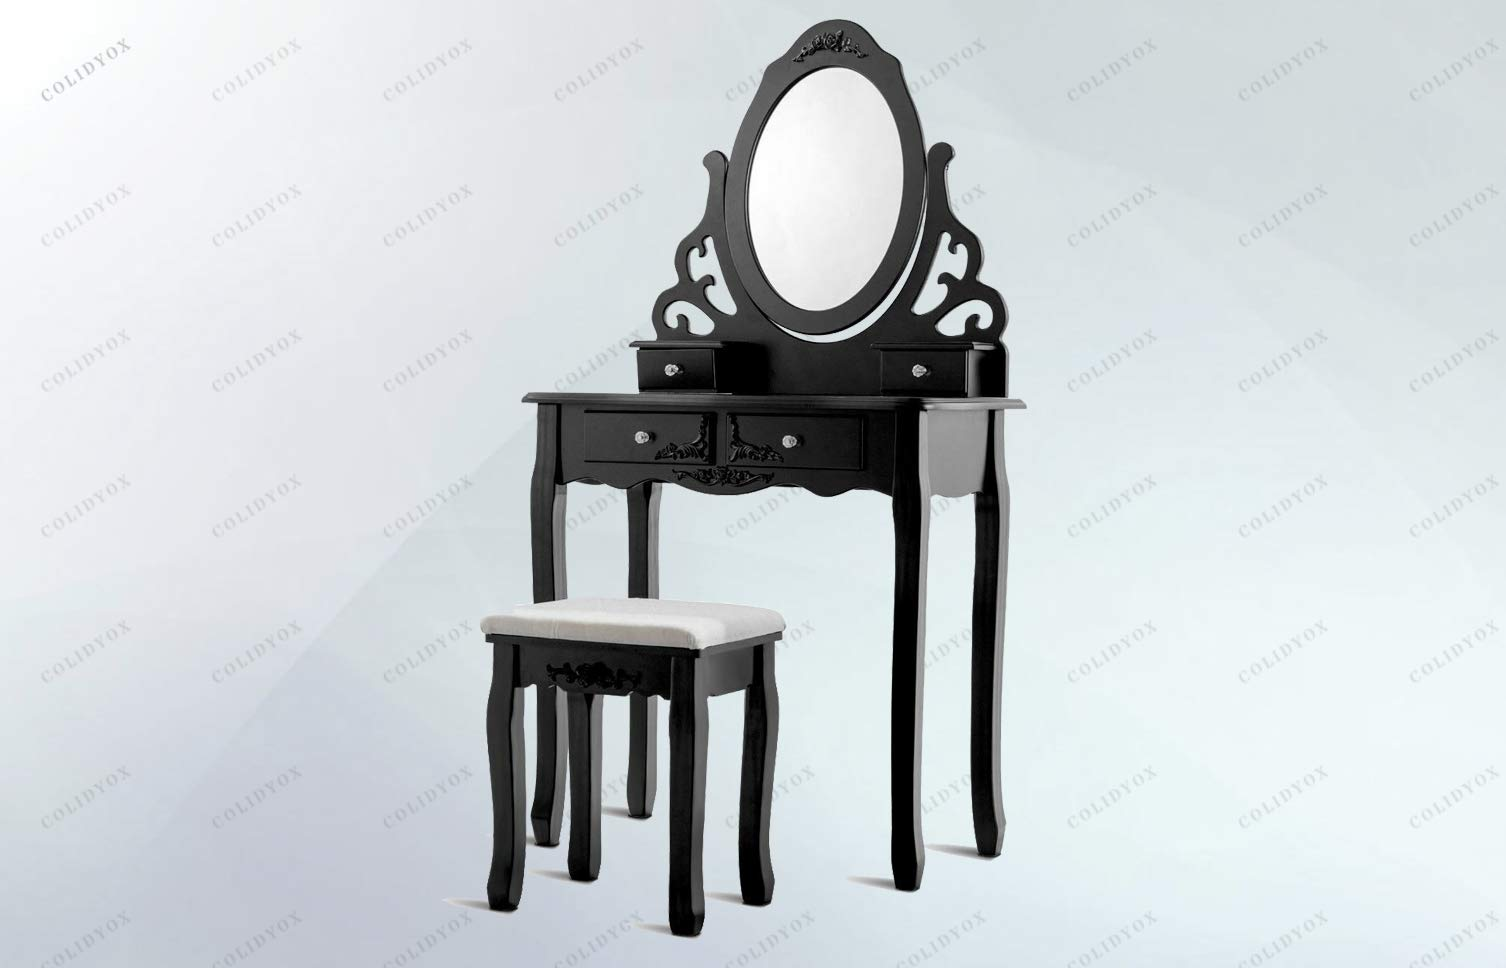 COLIDYOX___Wonderful Dressing Table Set,Glamorous,Fantastic Product,Black Appearance,Elegant,fine Display,Mirrored,Four Drawers and a Stool,Biggest Characteristic,Mirror and Drawers,Smooth Tabletop